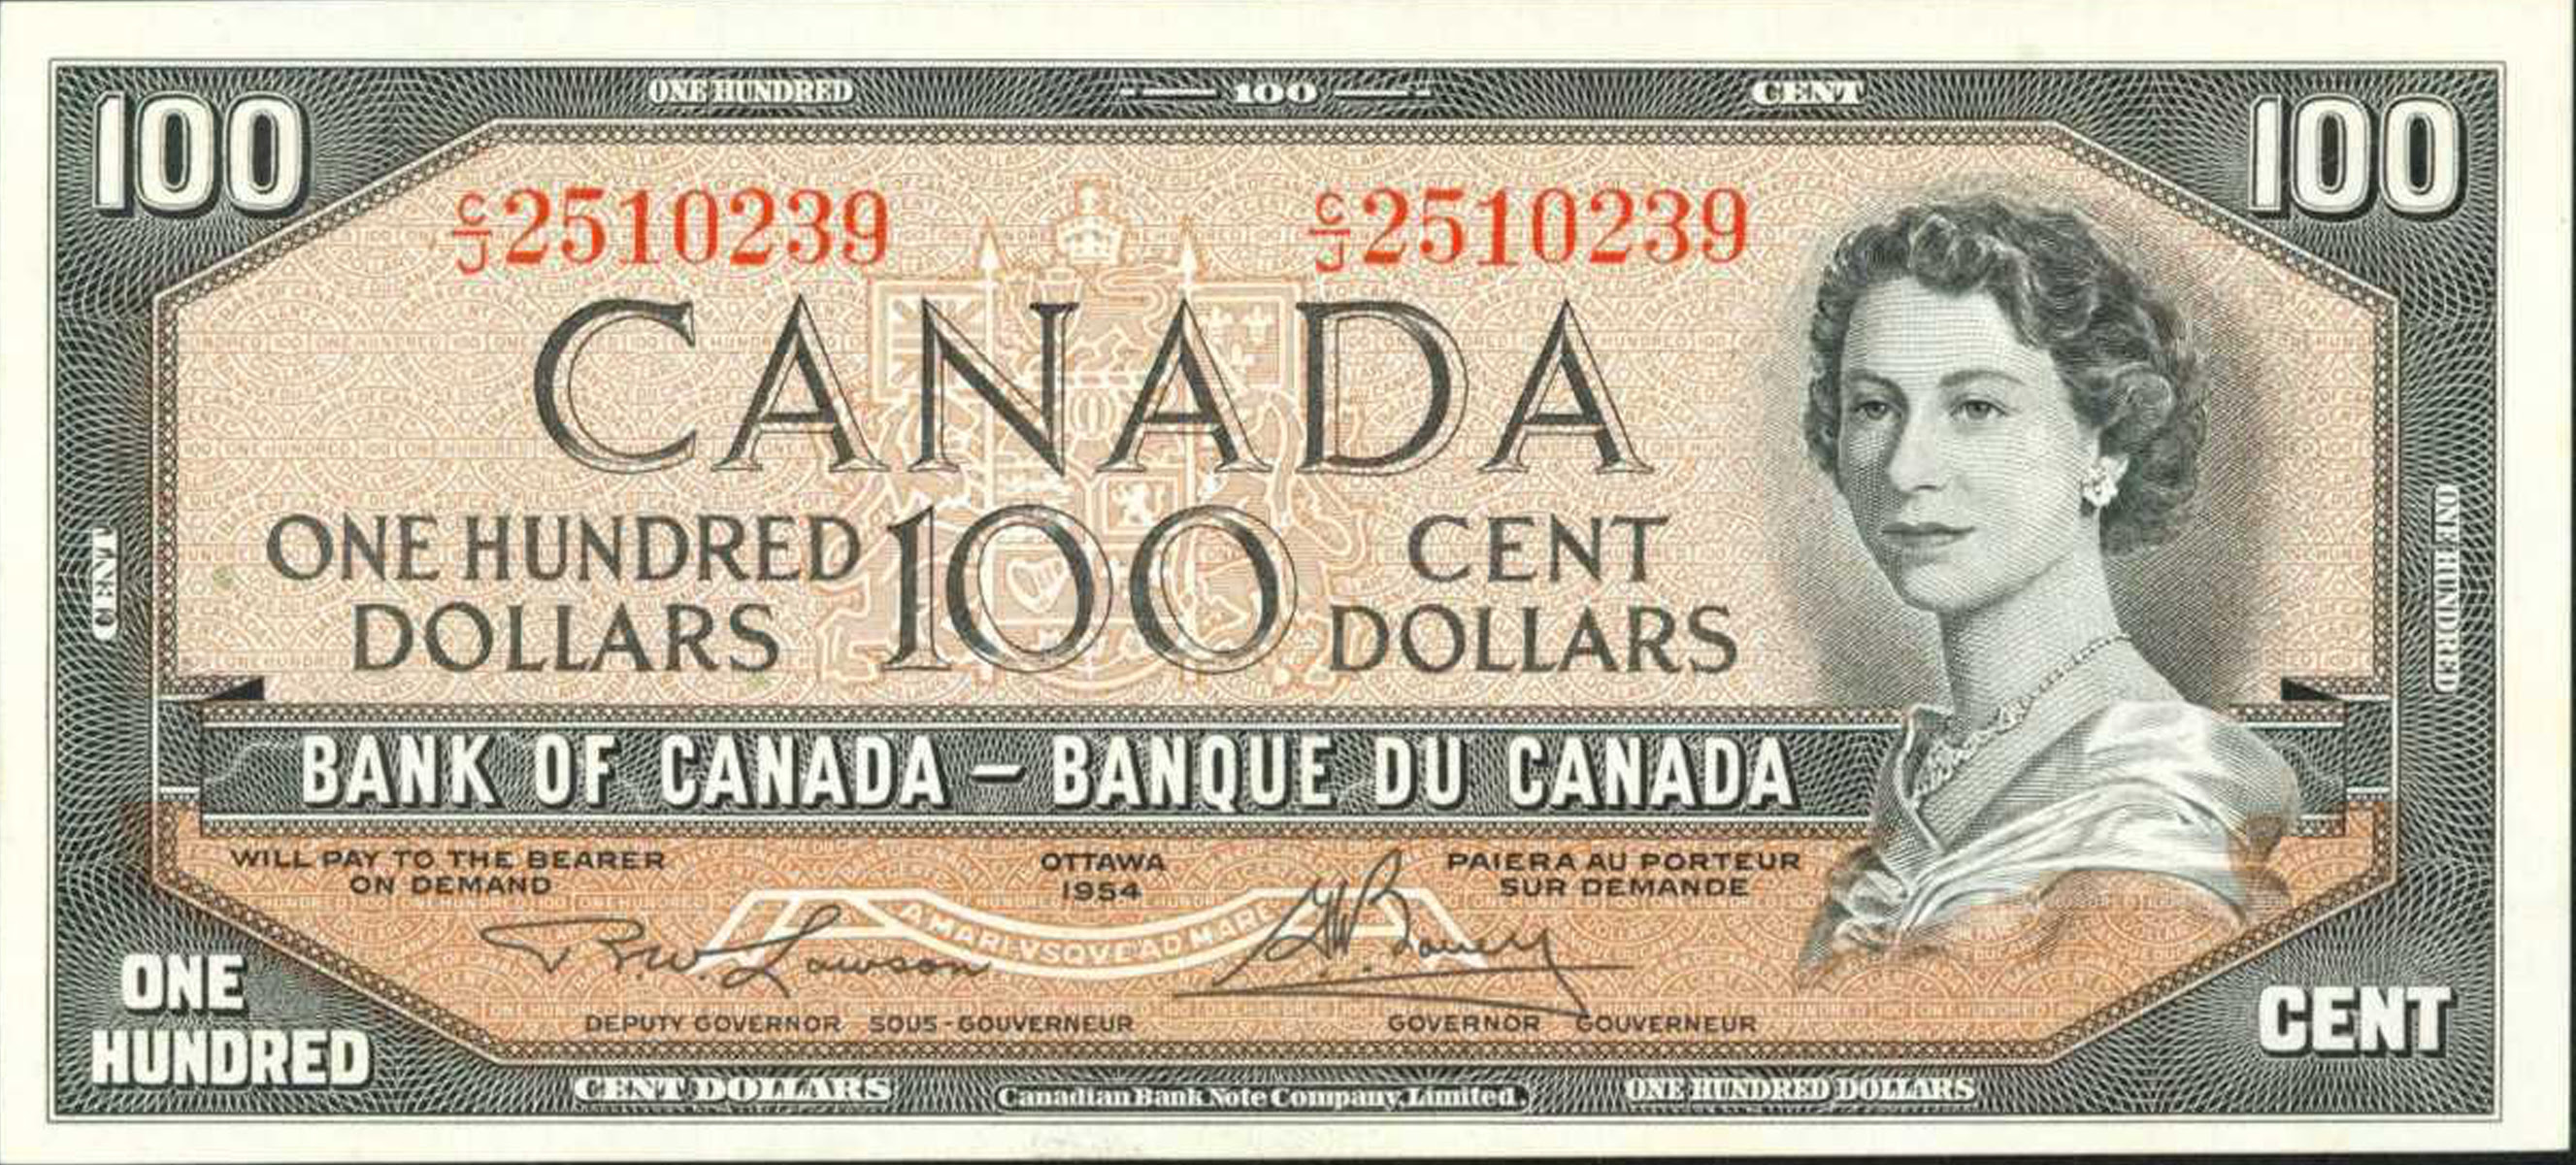 wallpaper craft - Best Who Is On The Canadian 100 Dollar Bill